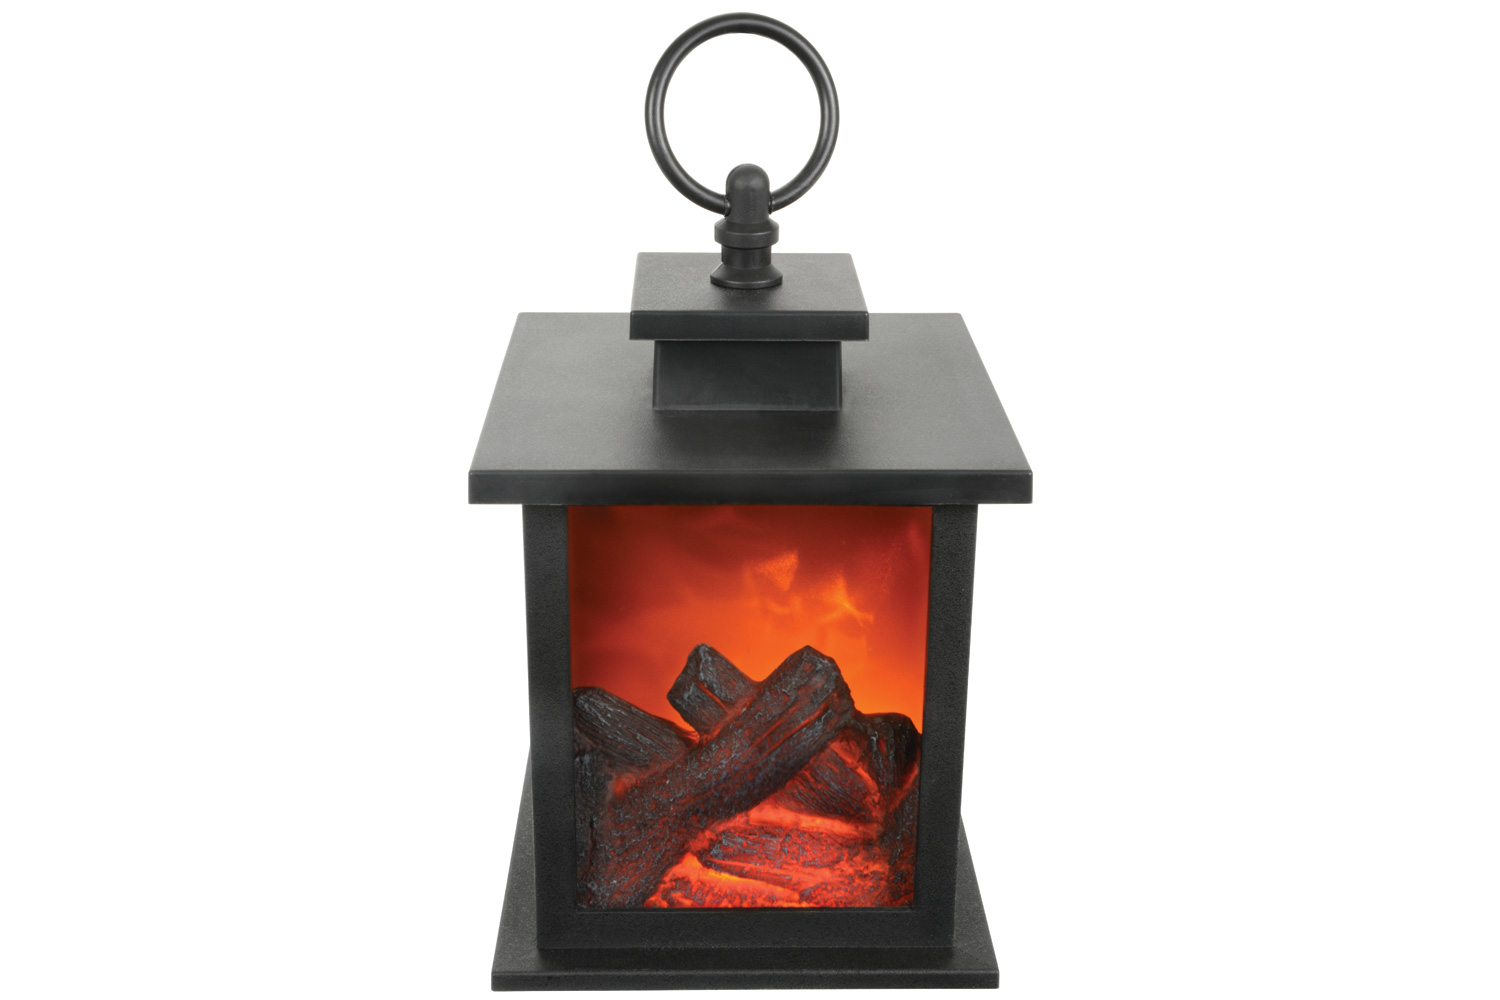 LED Fireplace Lantern + Timer